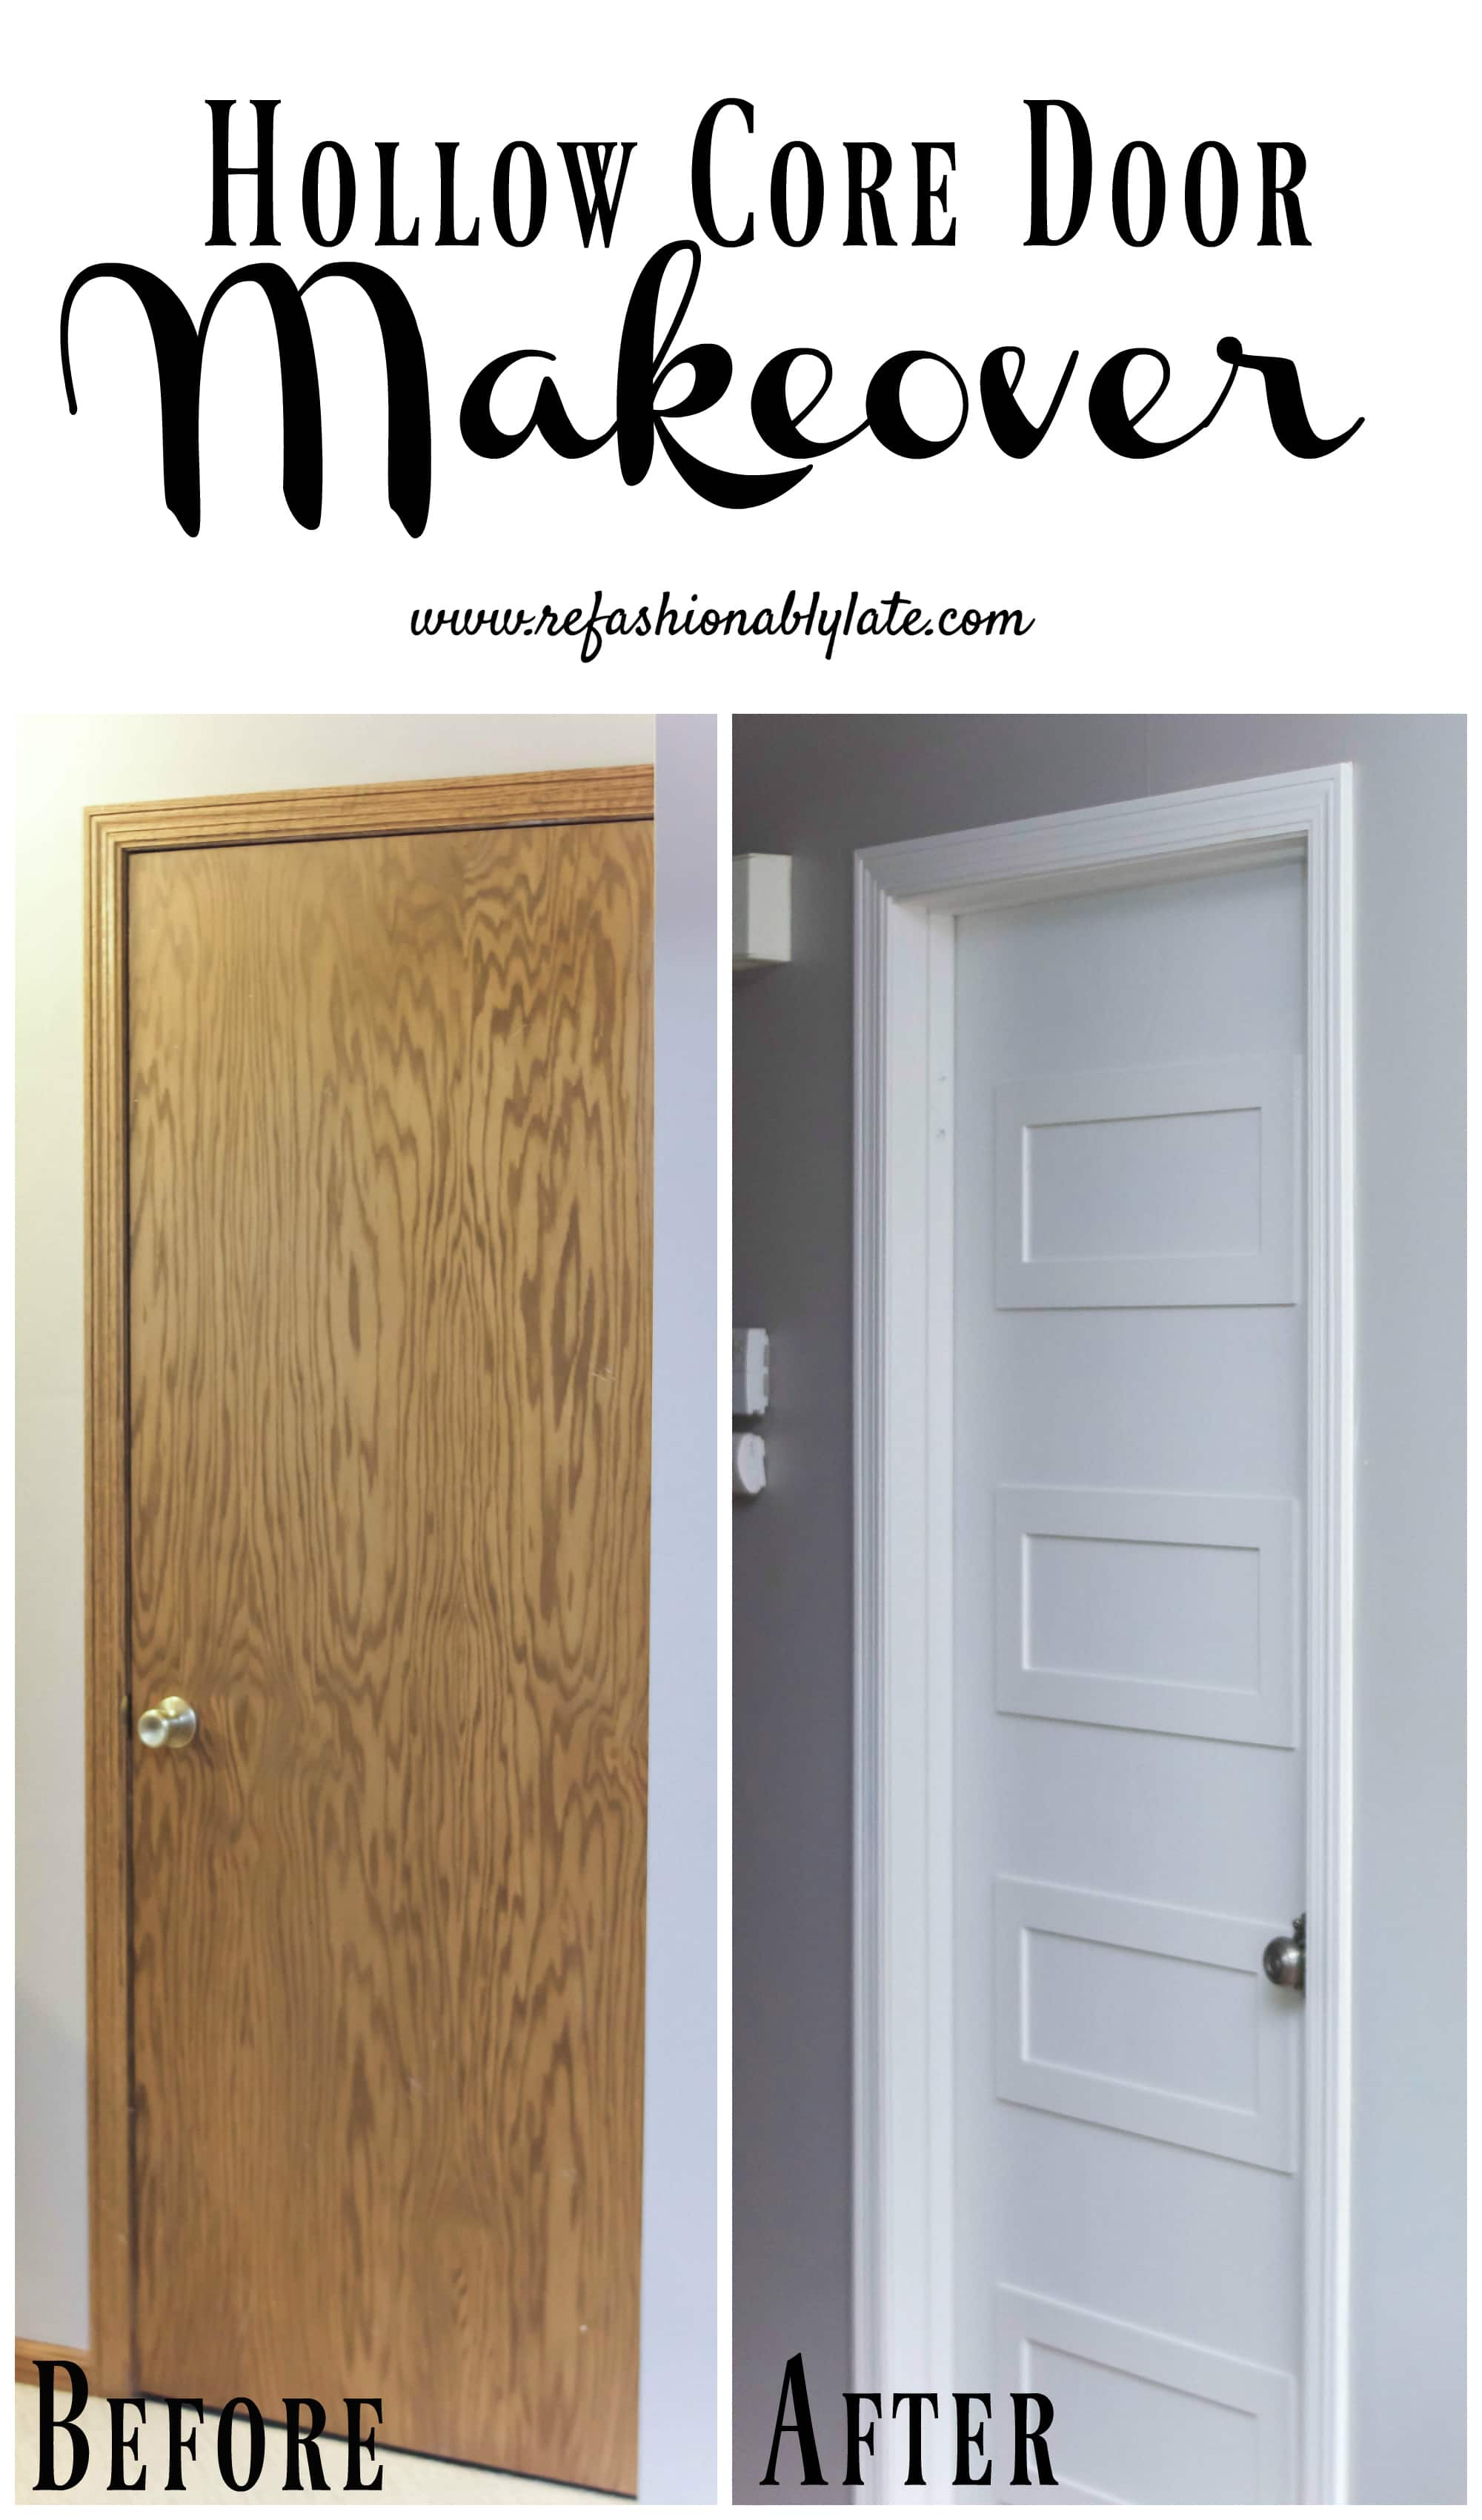 Hollow Core Door Makeover Refashionably Late